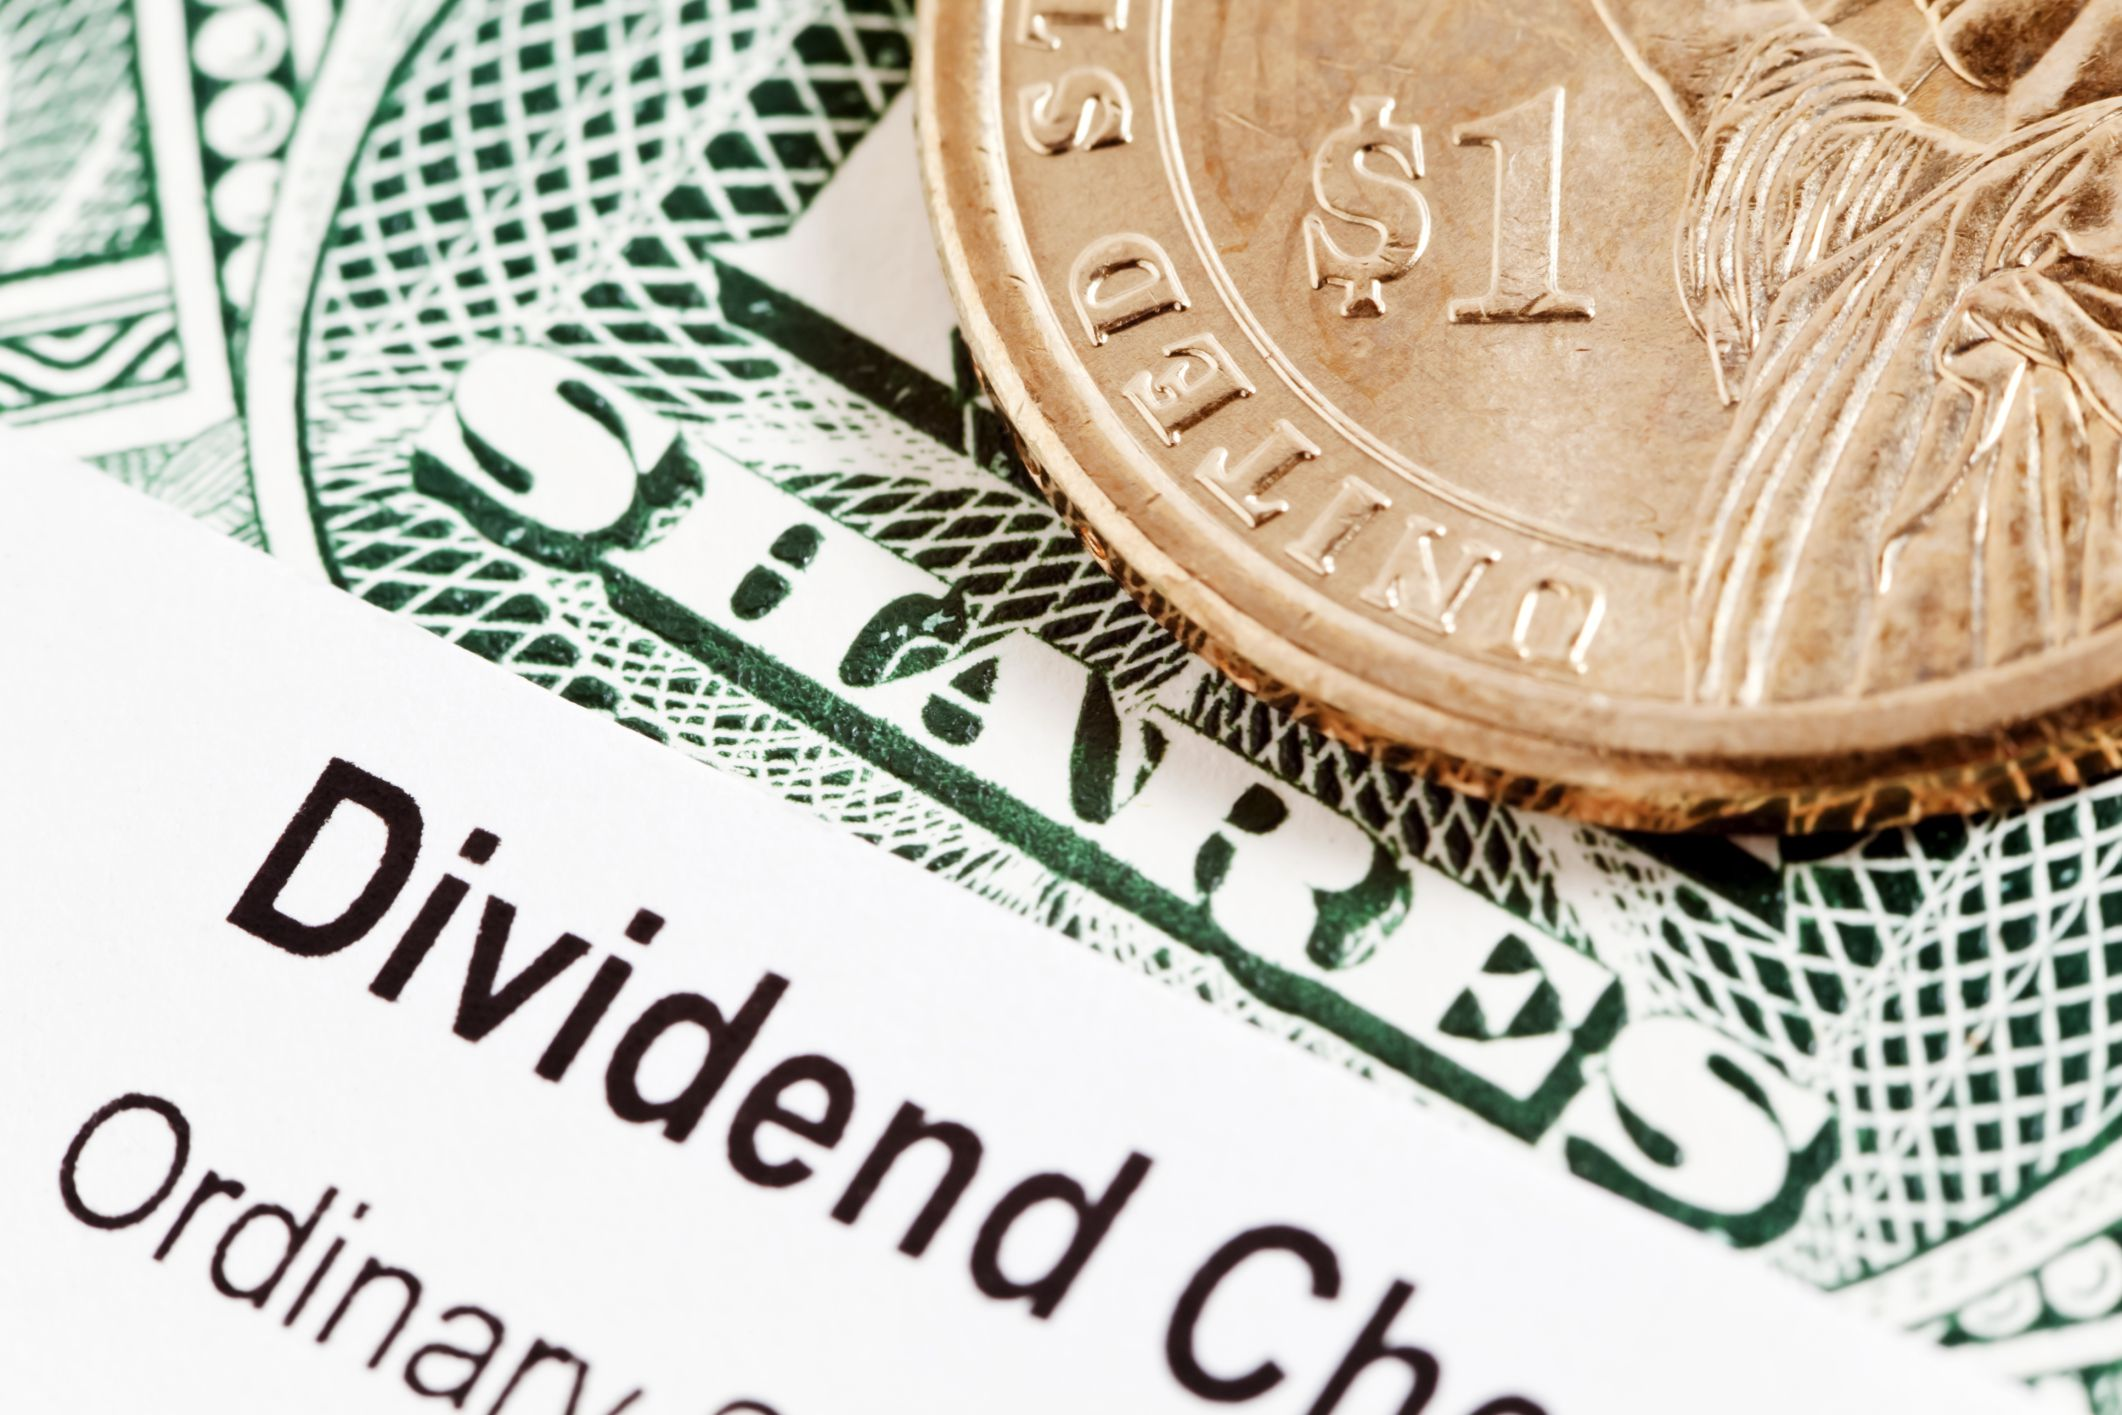 worksheet Qualified Dividends And Capital Gain Tax Worksheet 2013 how dividends are taxed and reported on tax returns